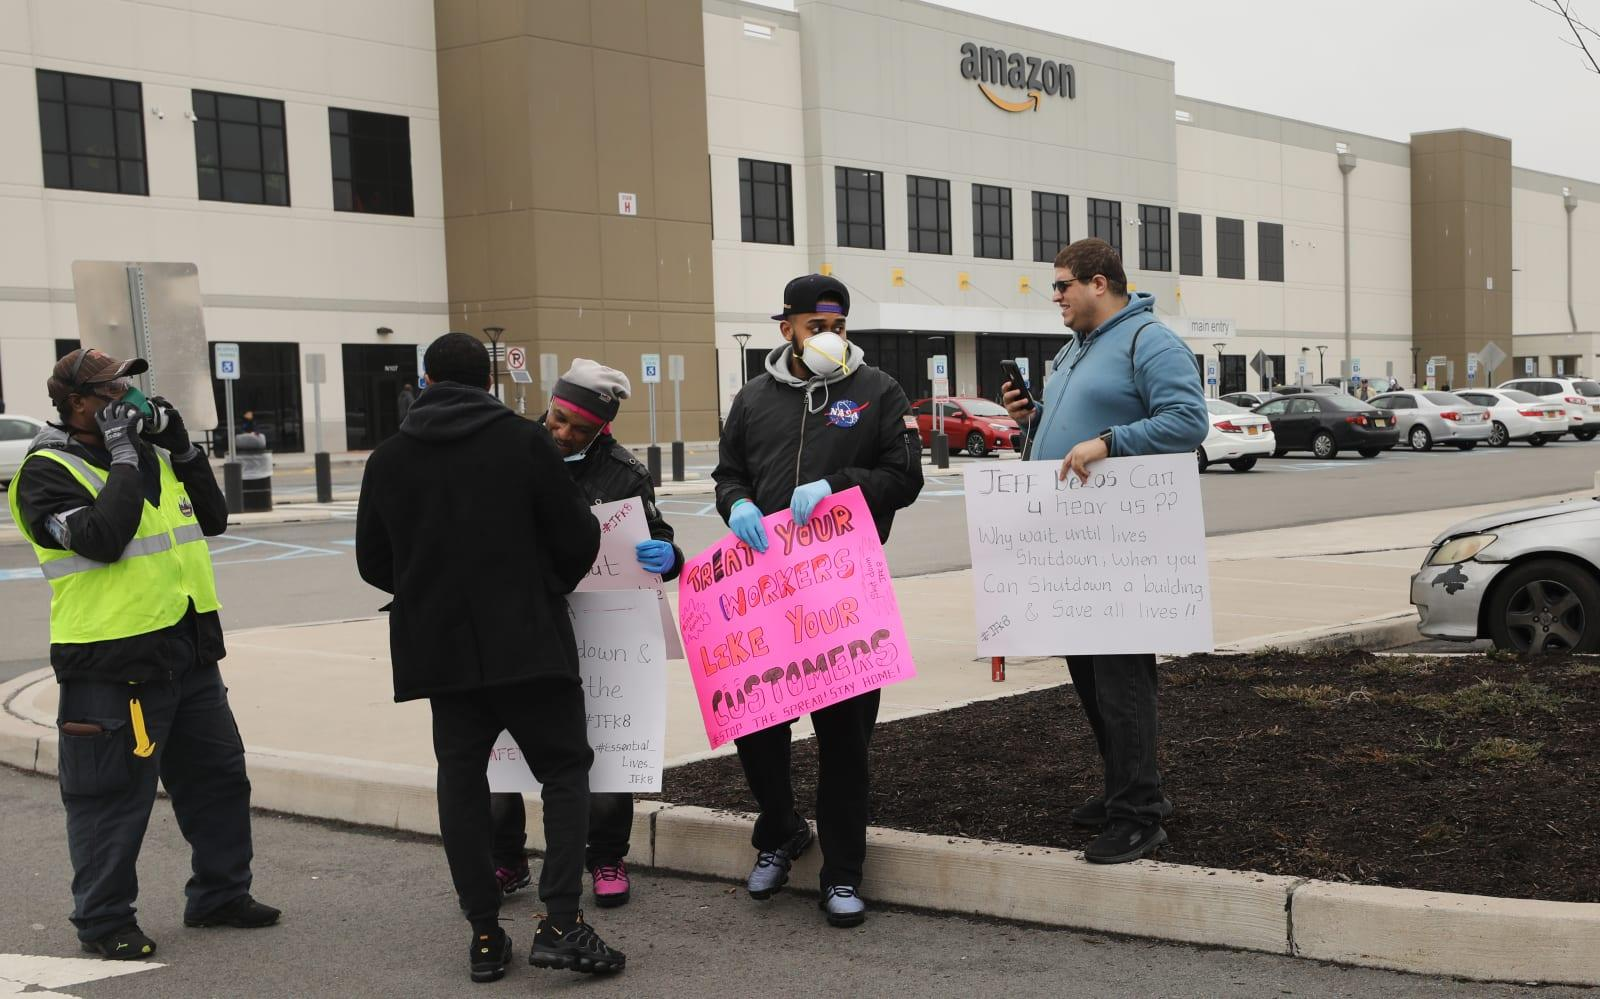 Amazon responds to backlash with increased protection for workers